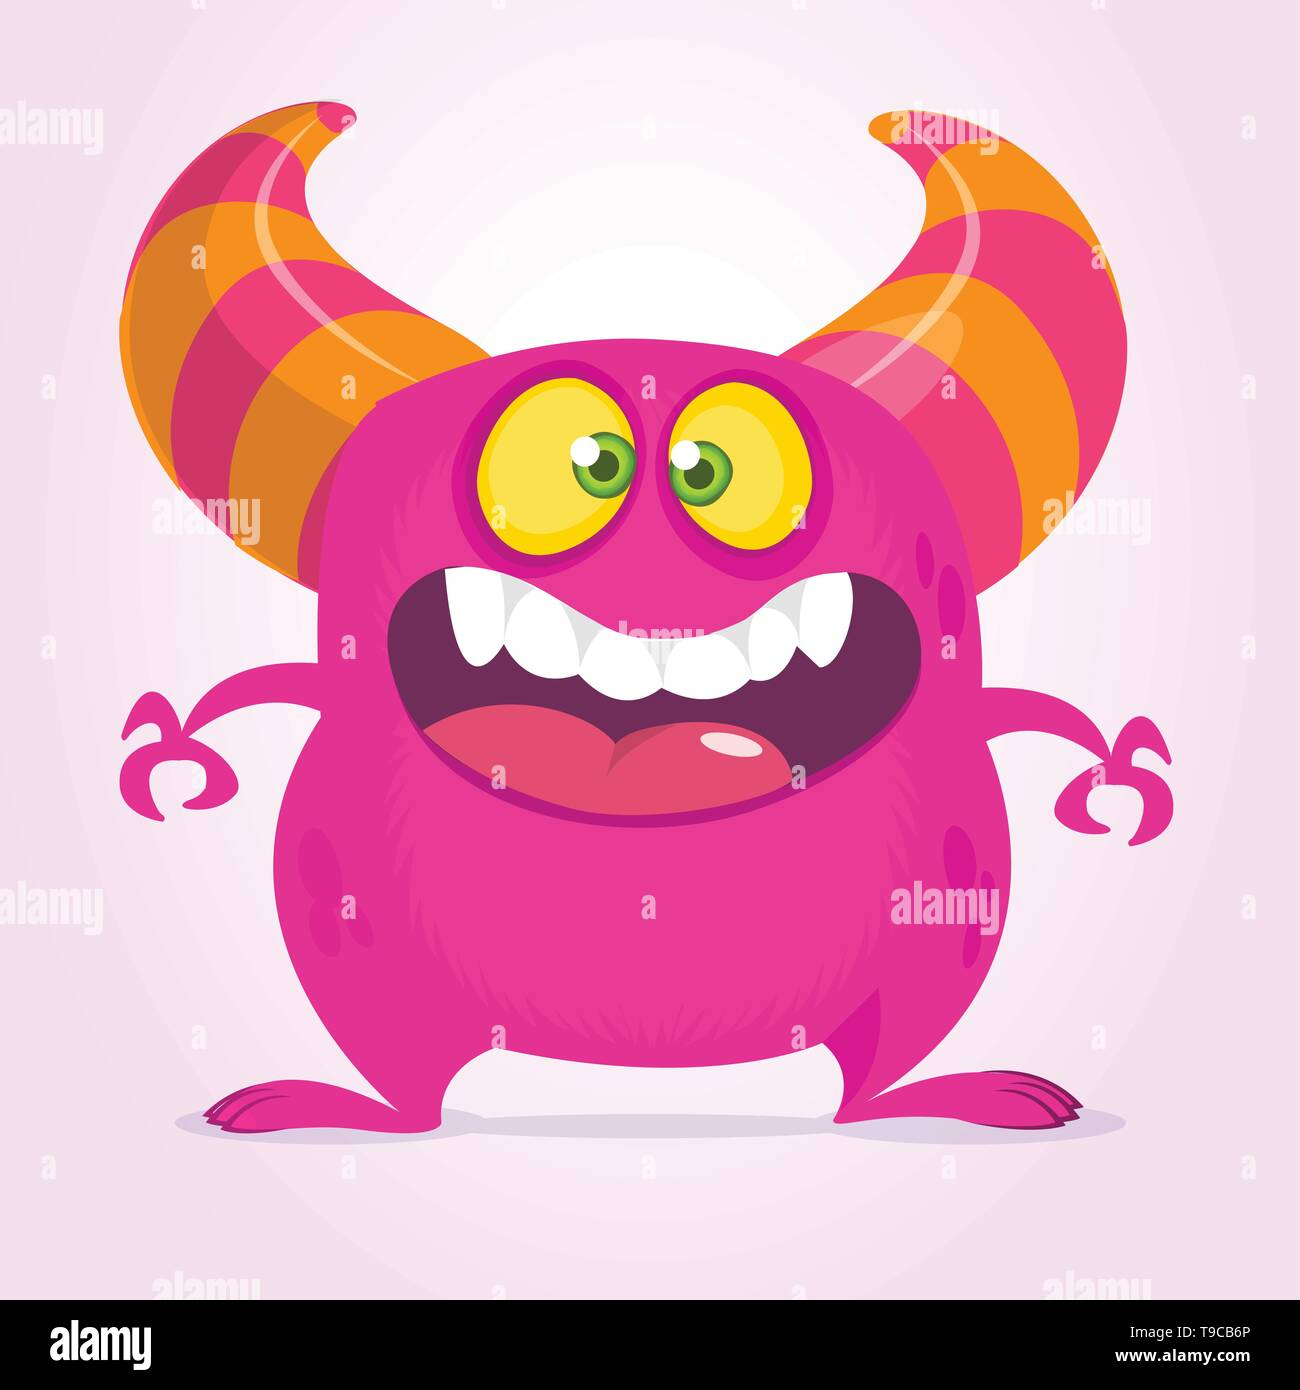 Happy cartoon monster with big mouth. Vector pink  monster illustration. Halloween design - Stock Image